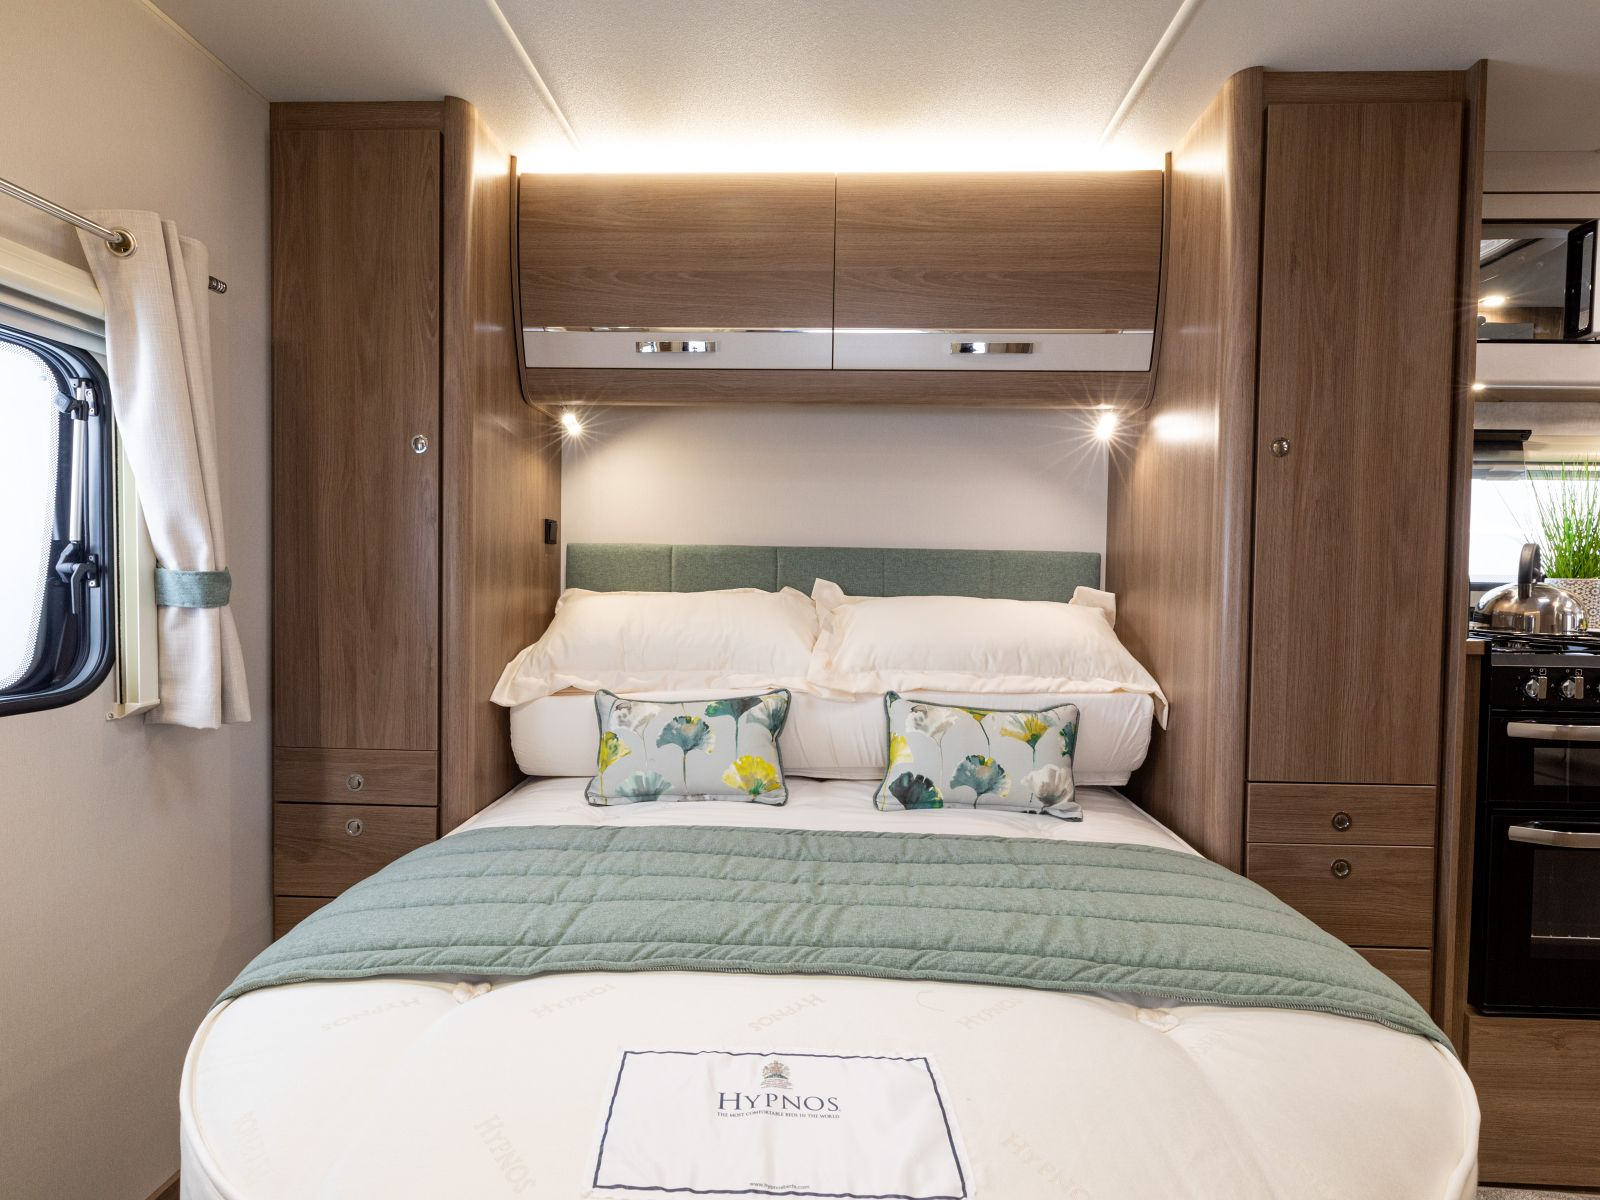 Double bed flanked by two large wardrobes '